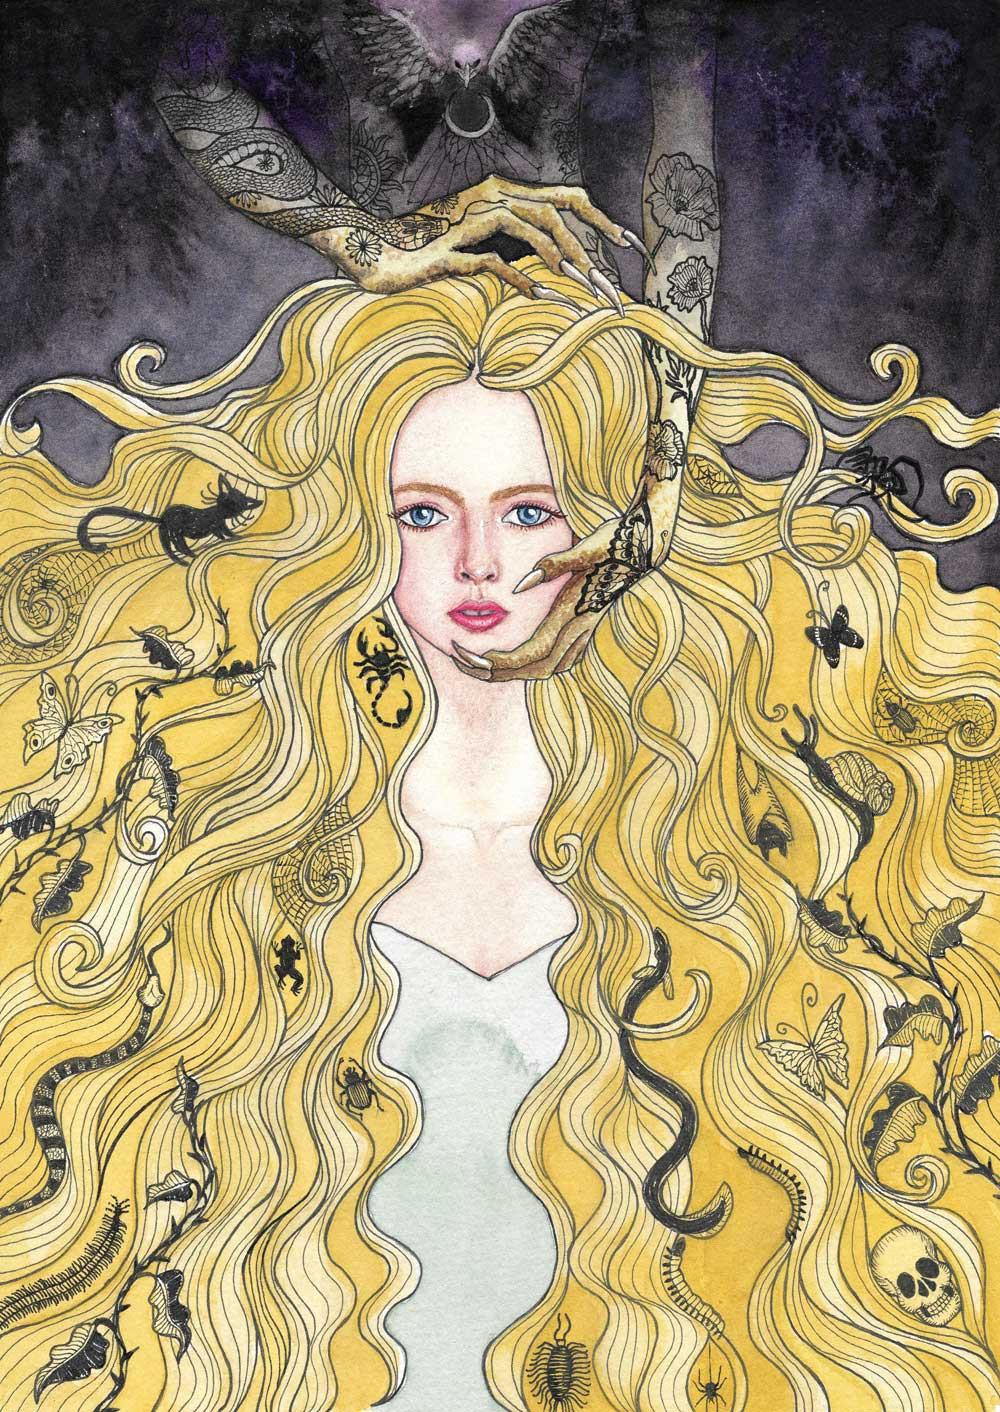 An illustration of a woman with long blond hair full of critters and a vague tattooed dark figure behind her holding her face